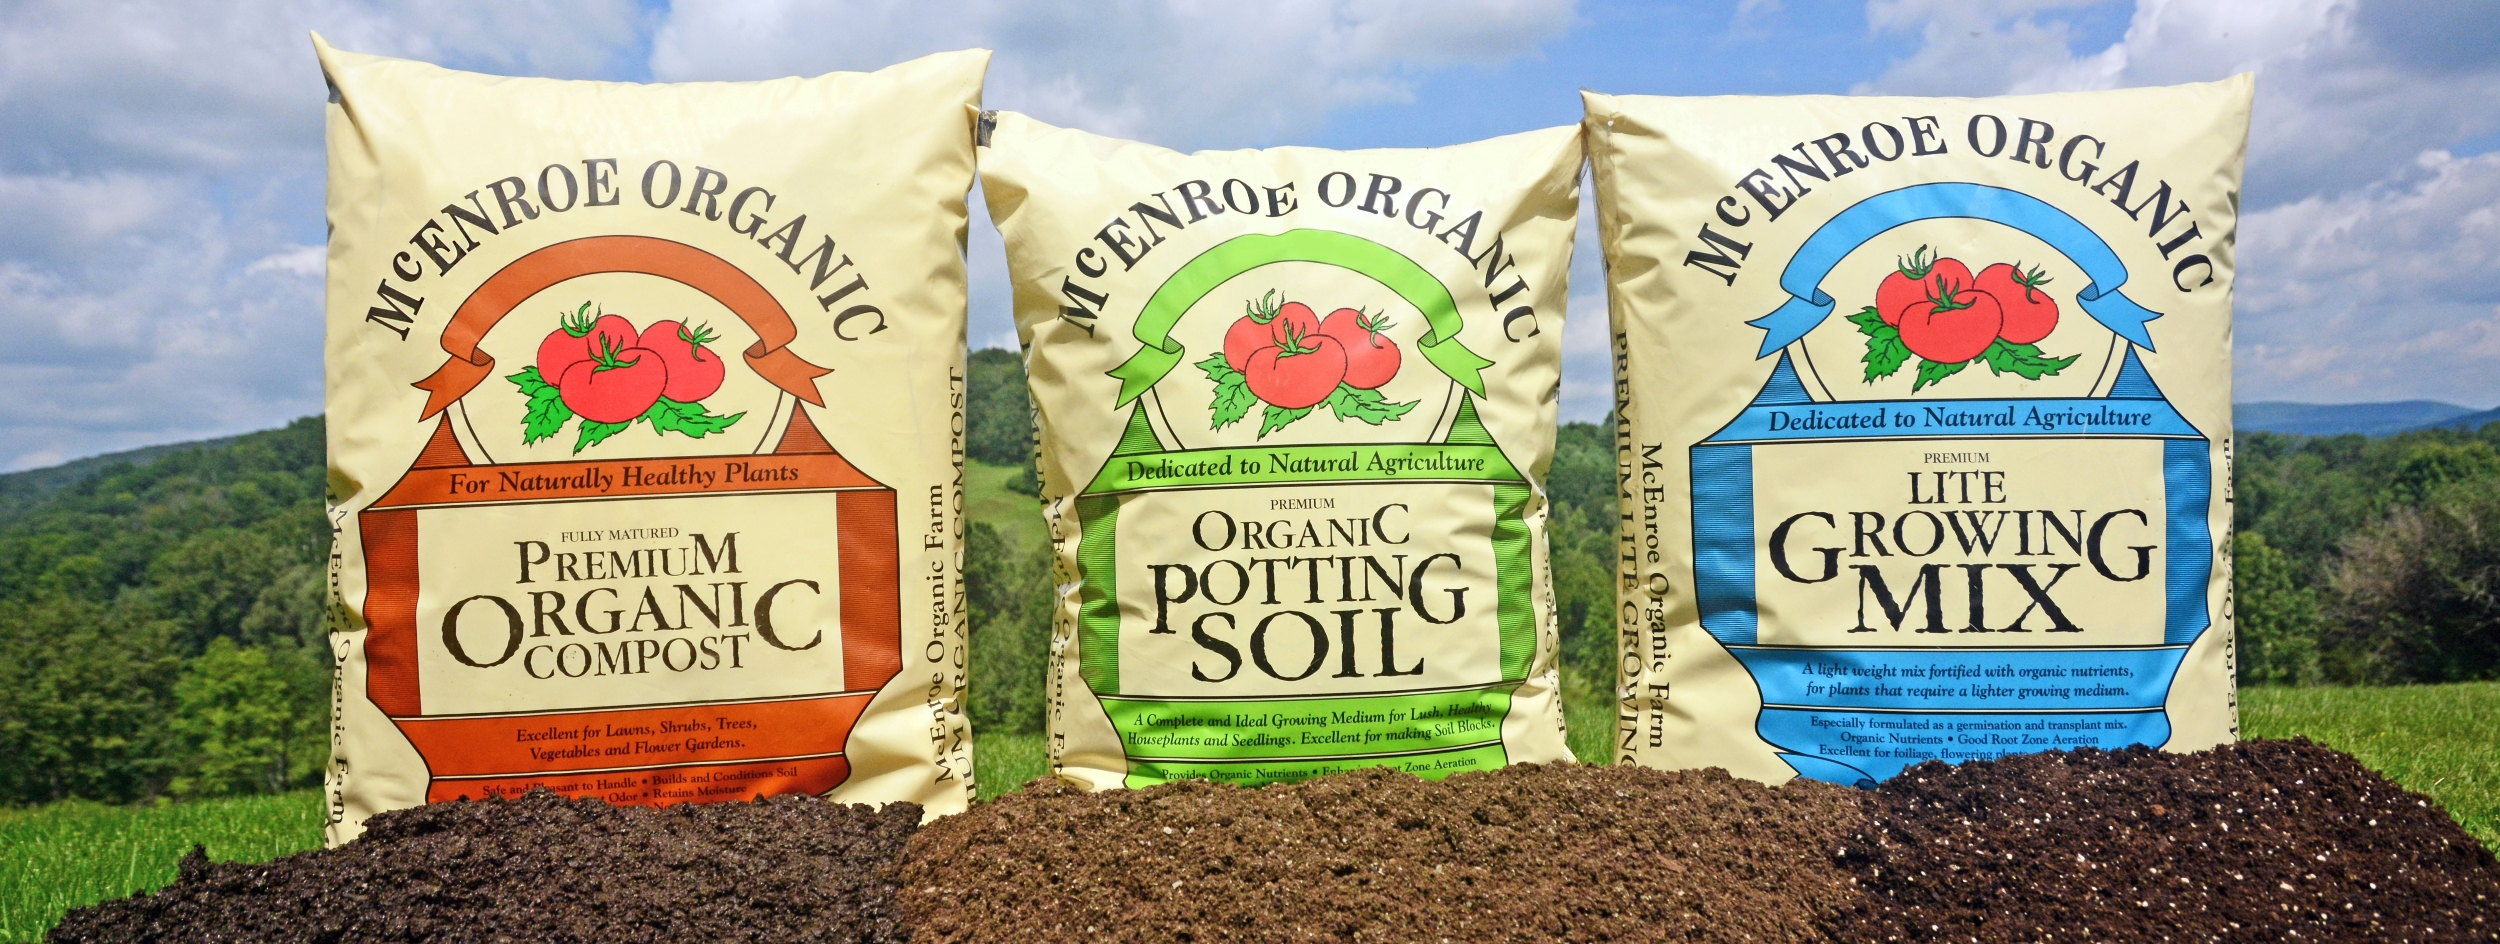 Our Compost is the Foundation of all of our Premium Soils